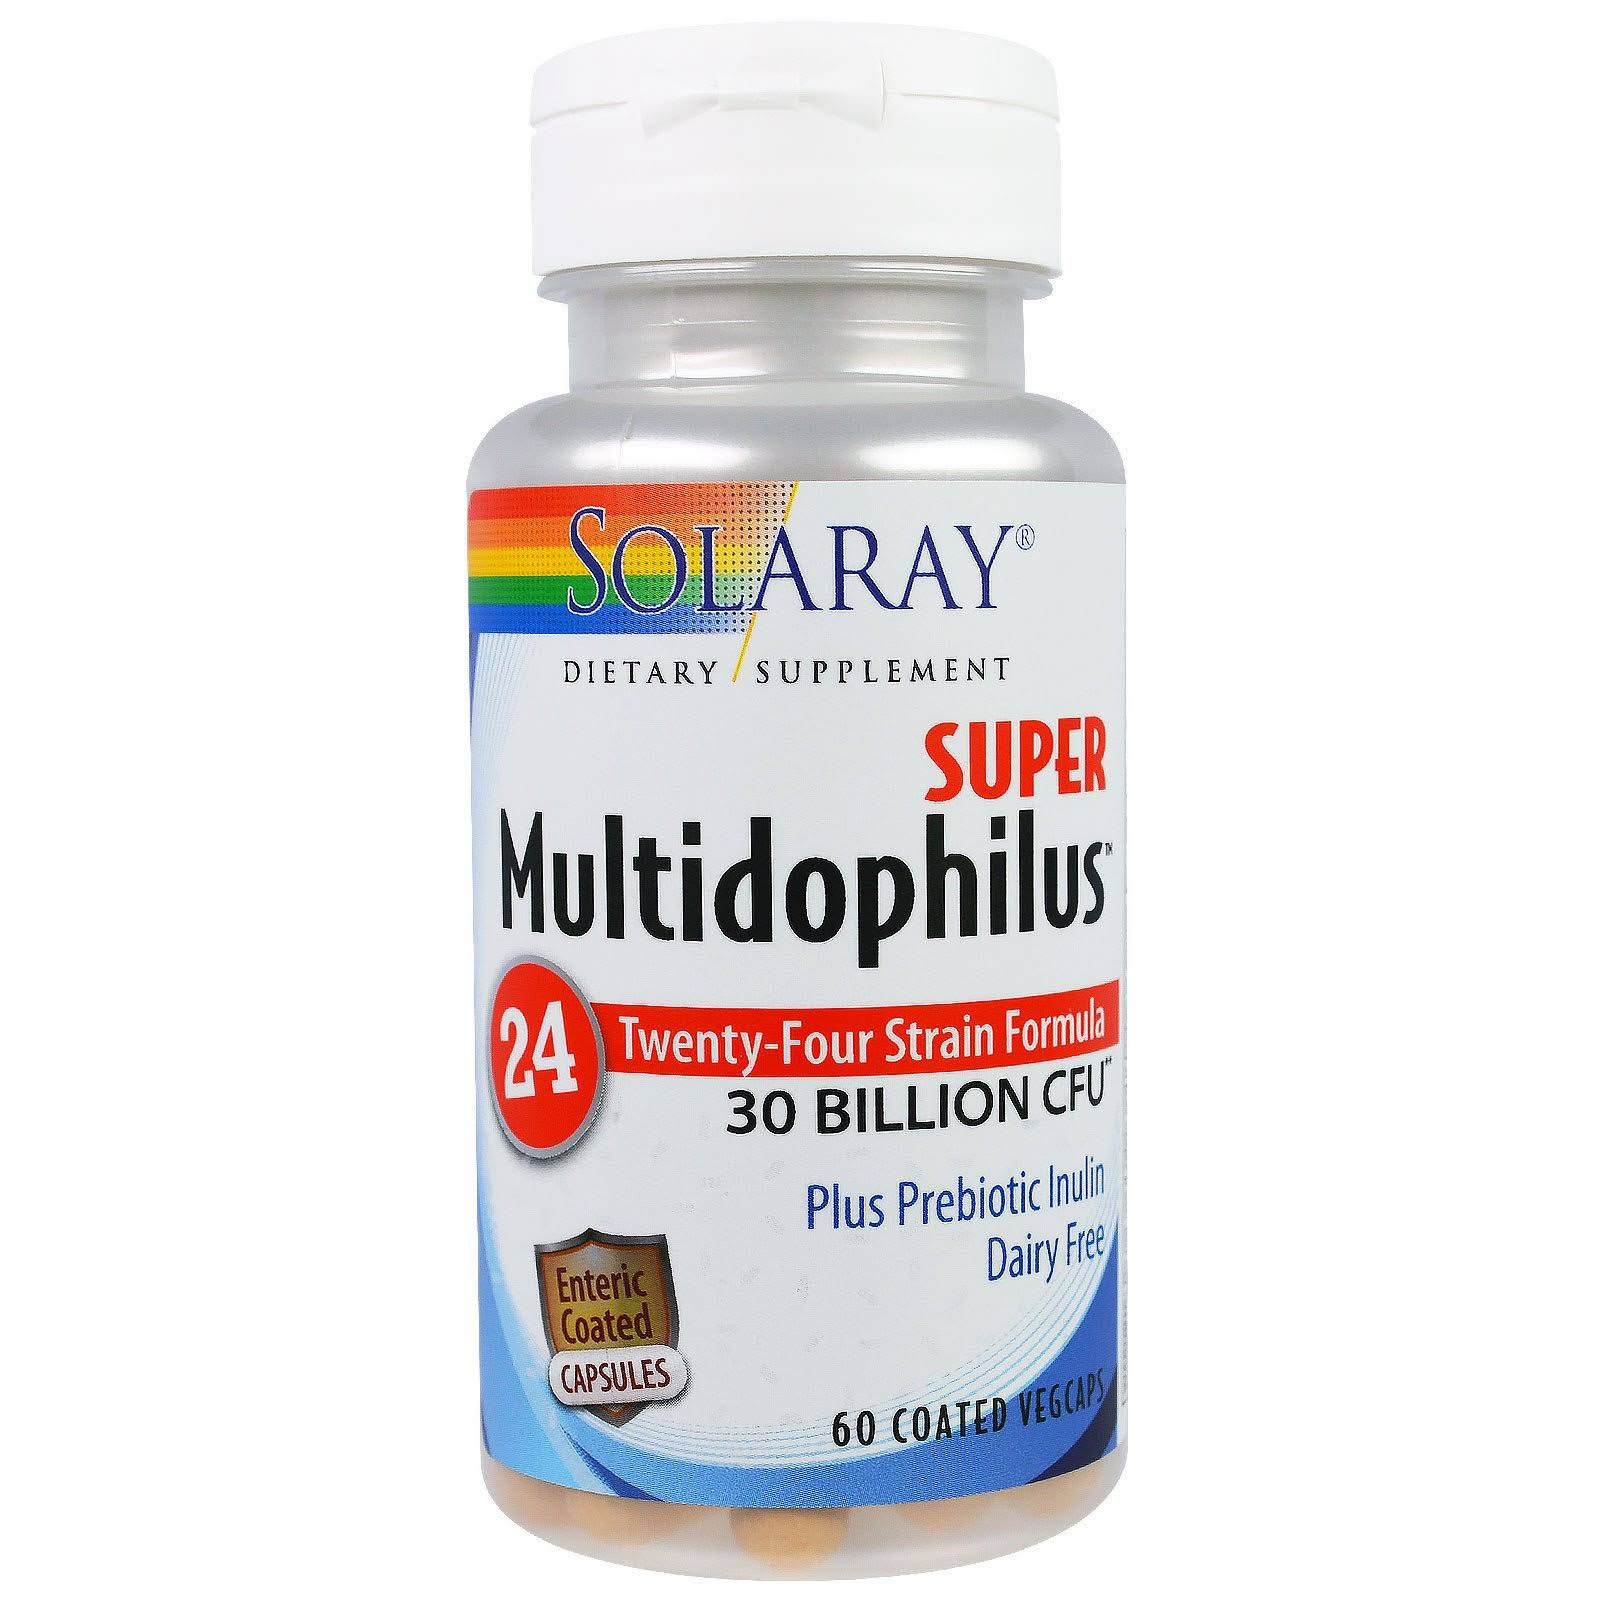 Solaray Super Multidophilus Dietary Supplement - 60 Vegetarian Capsule